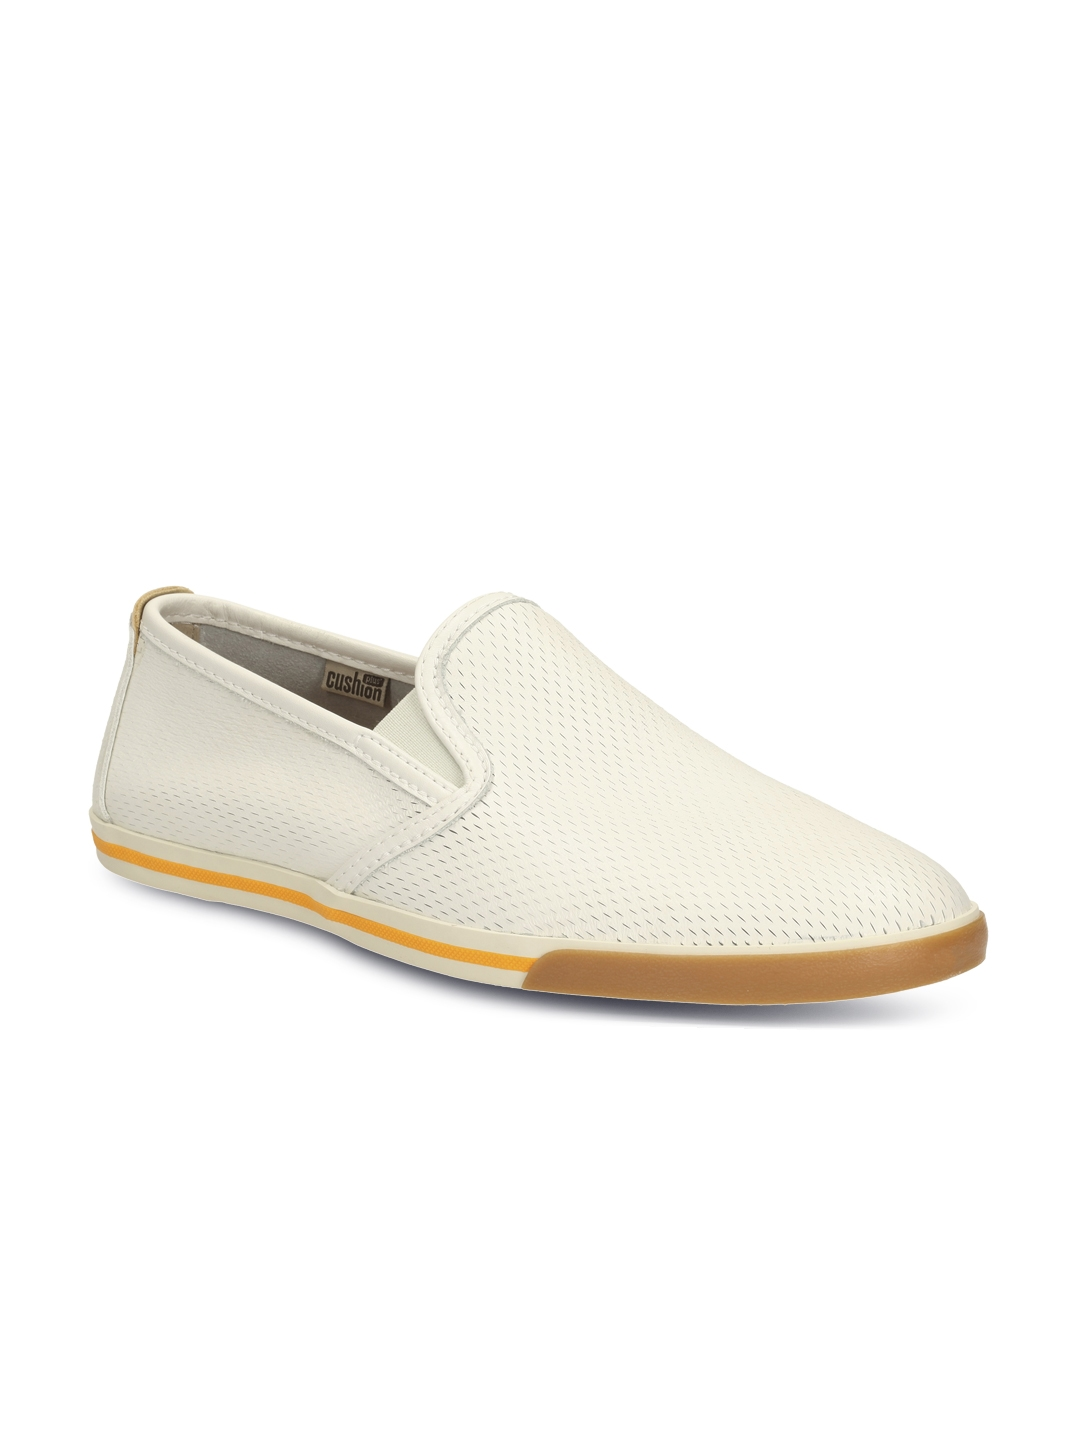 341716a2415 Buy Clarks Men White Solid Regular Slip On Sneakers - Casual Shoes ...